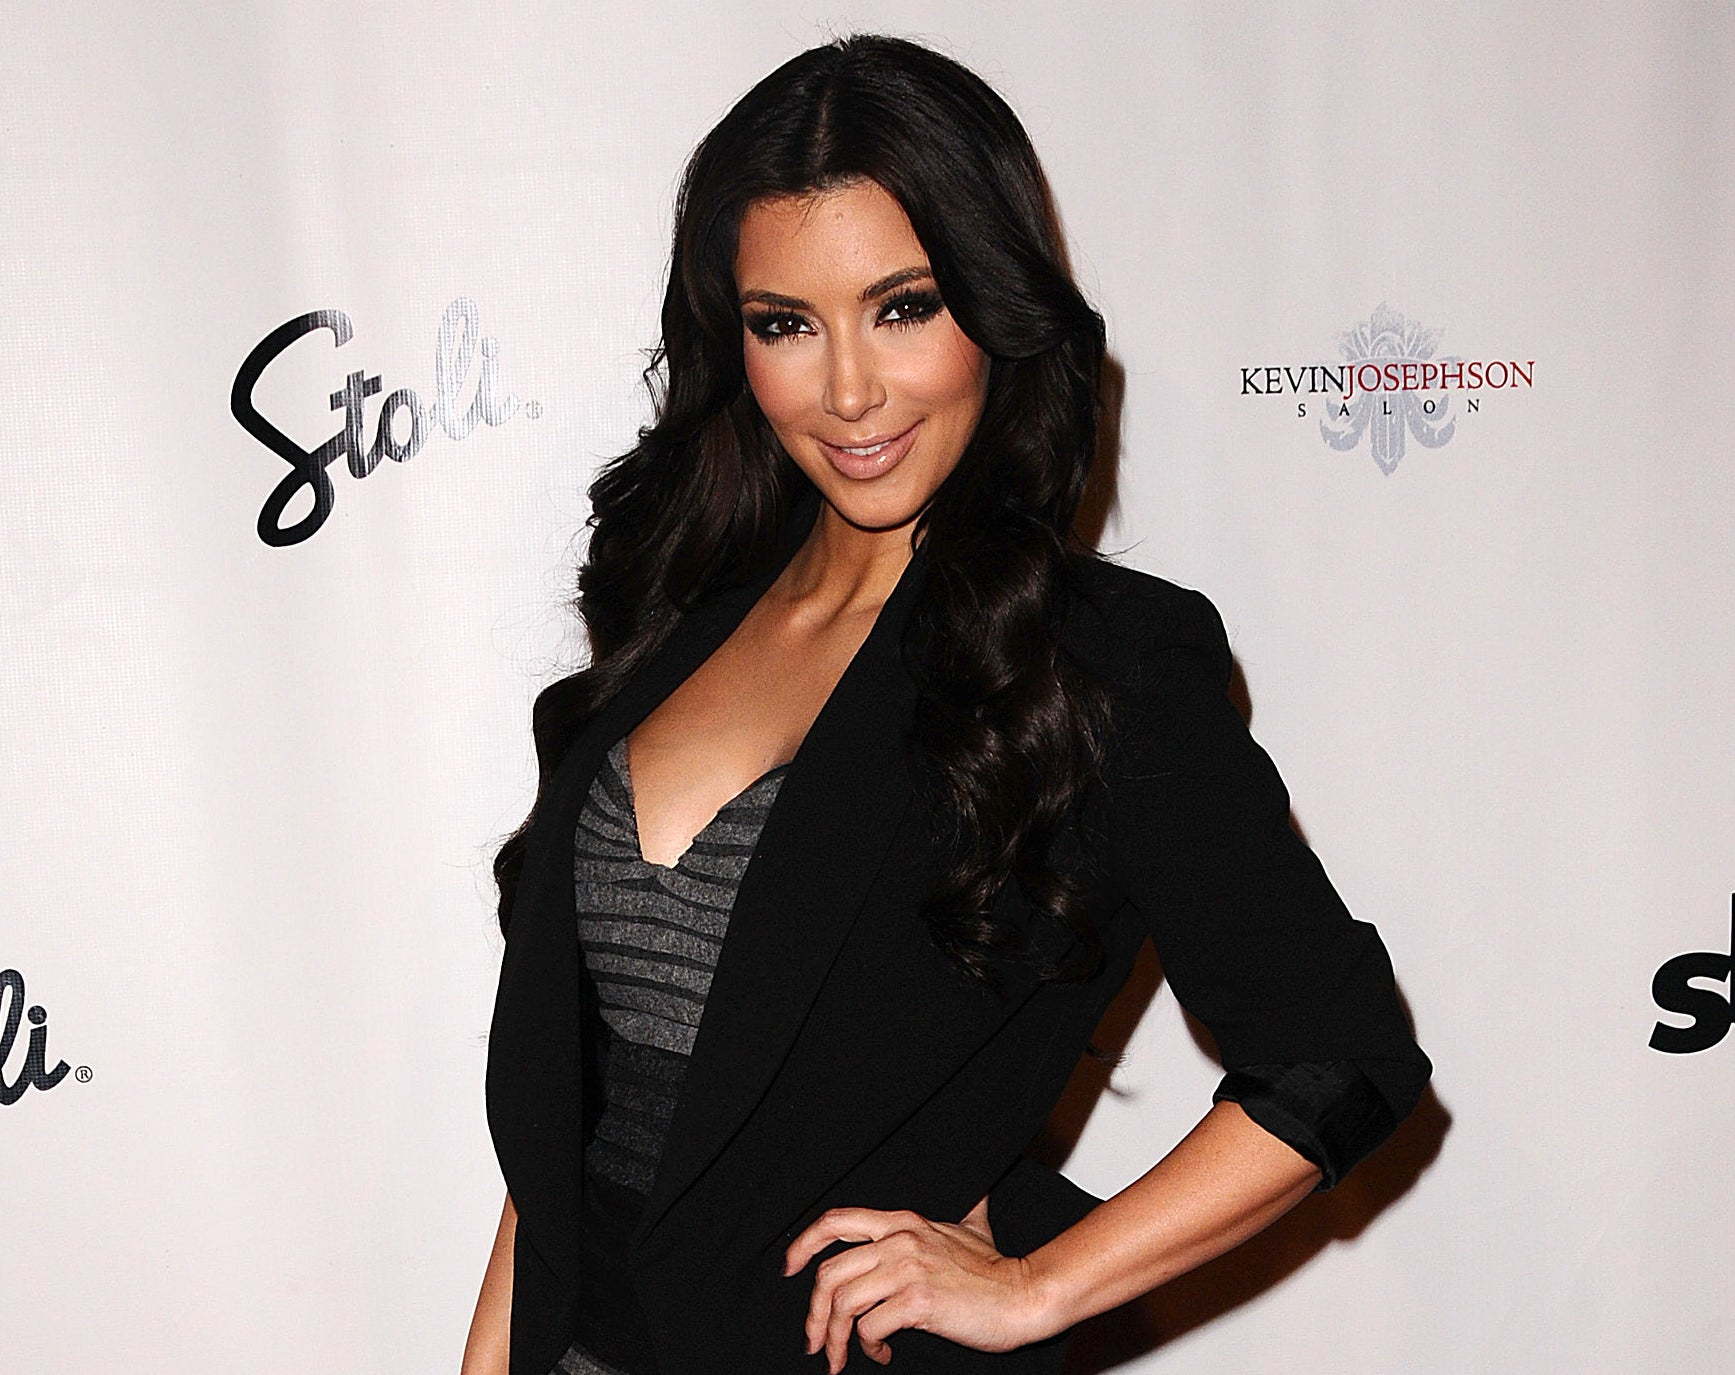 Kim poses with her hand on her hip at an old event